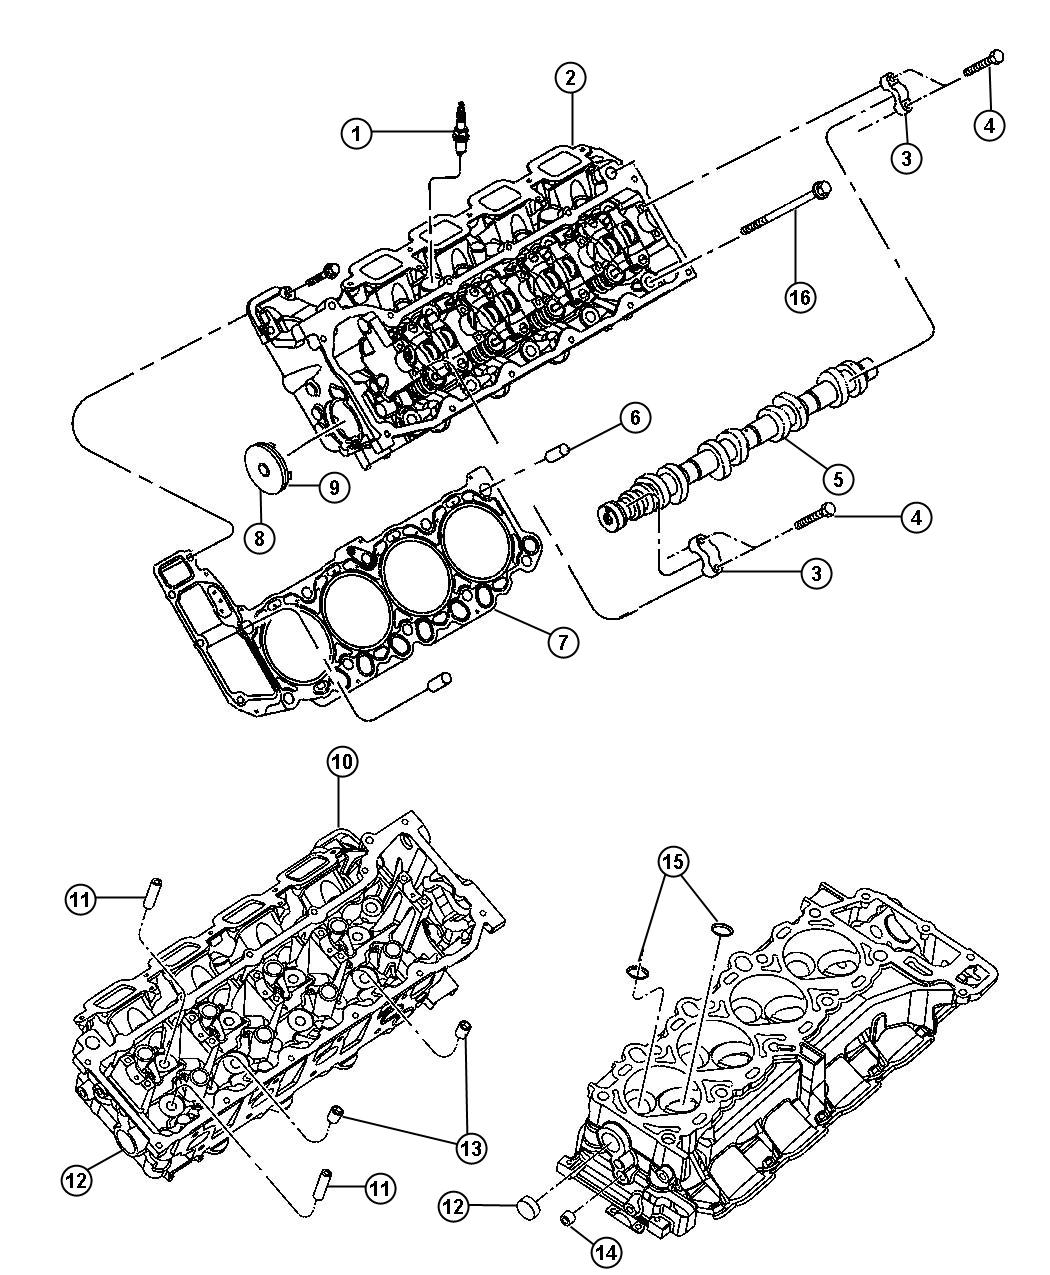 Chrysler Aspen Head Cylinder With Valves Right Side